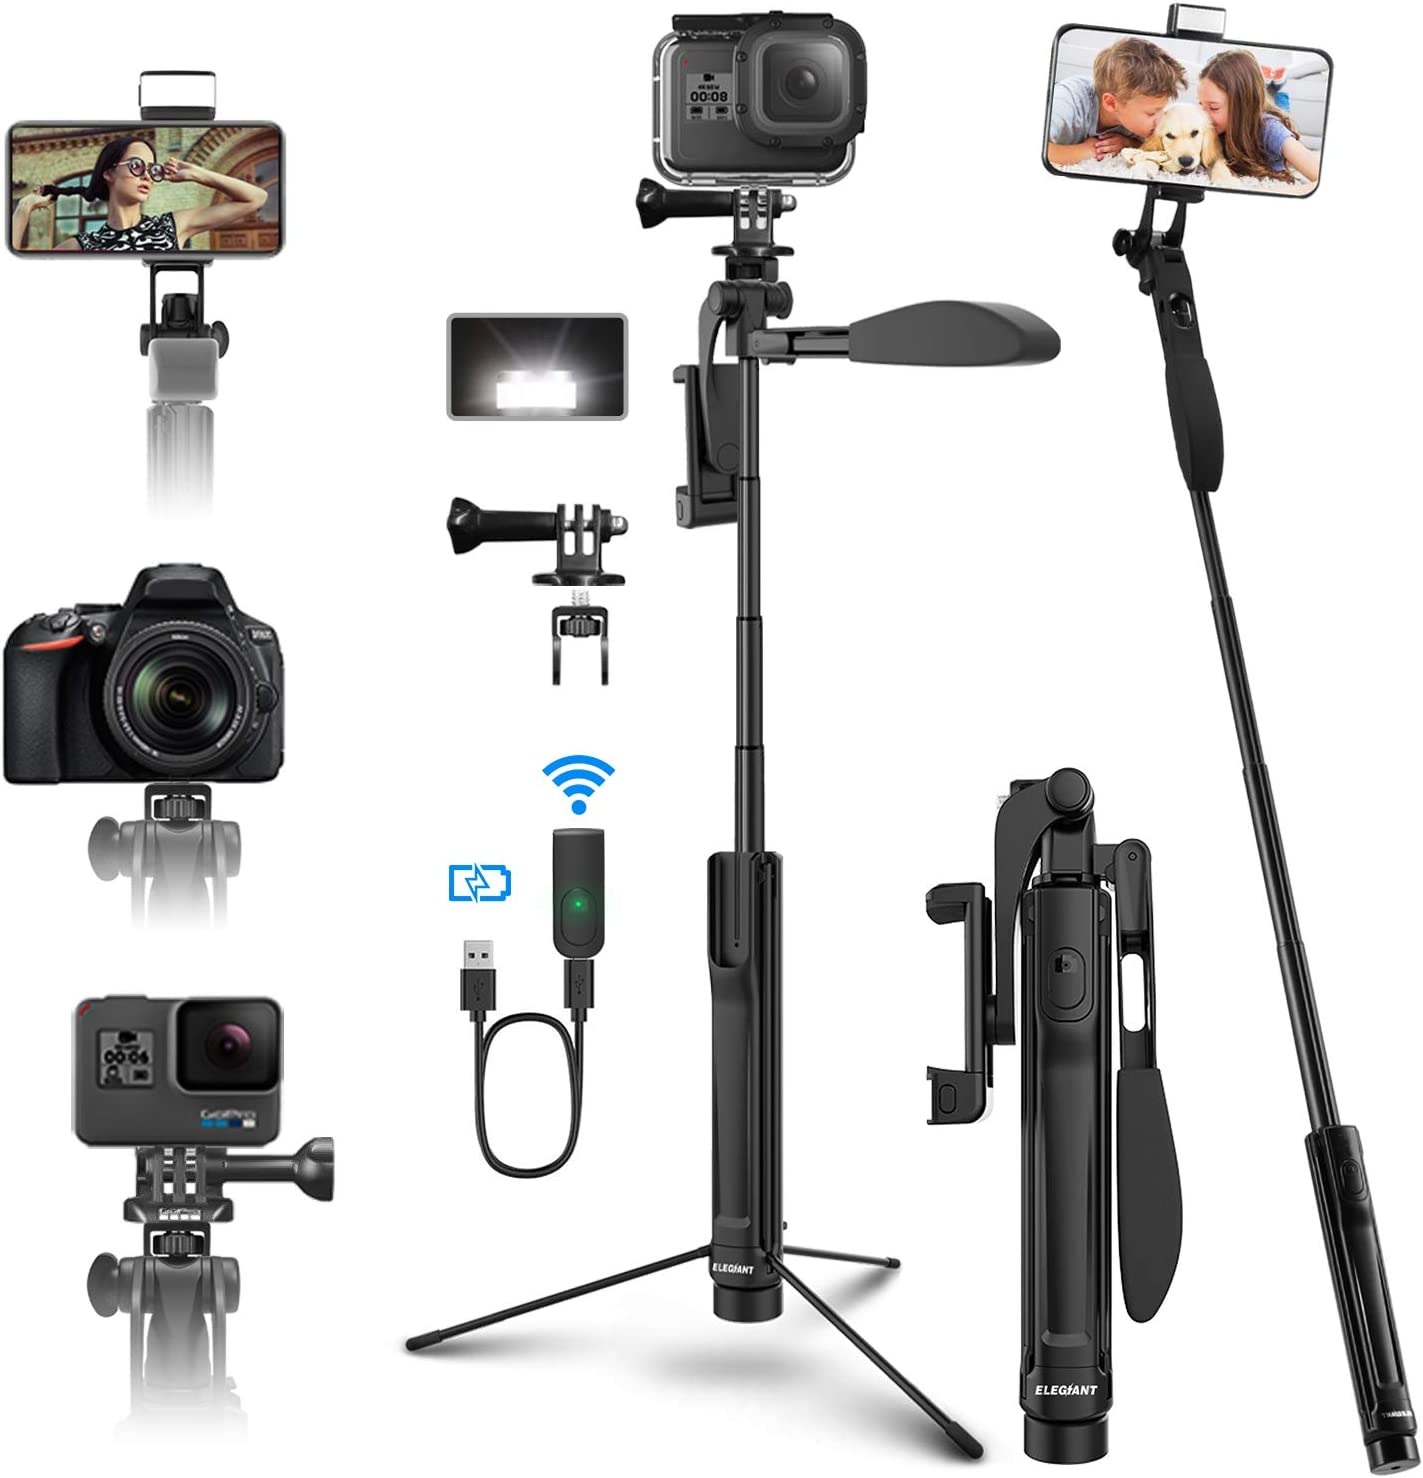 and Gopros DSLR Cameras Emart 51 inch Extendable Selfie Stick /& Tripod Stand Lightweight with Wireless Bluetooth Remote Fits iPhone